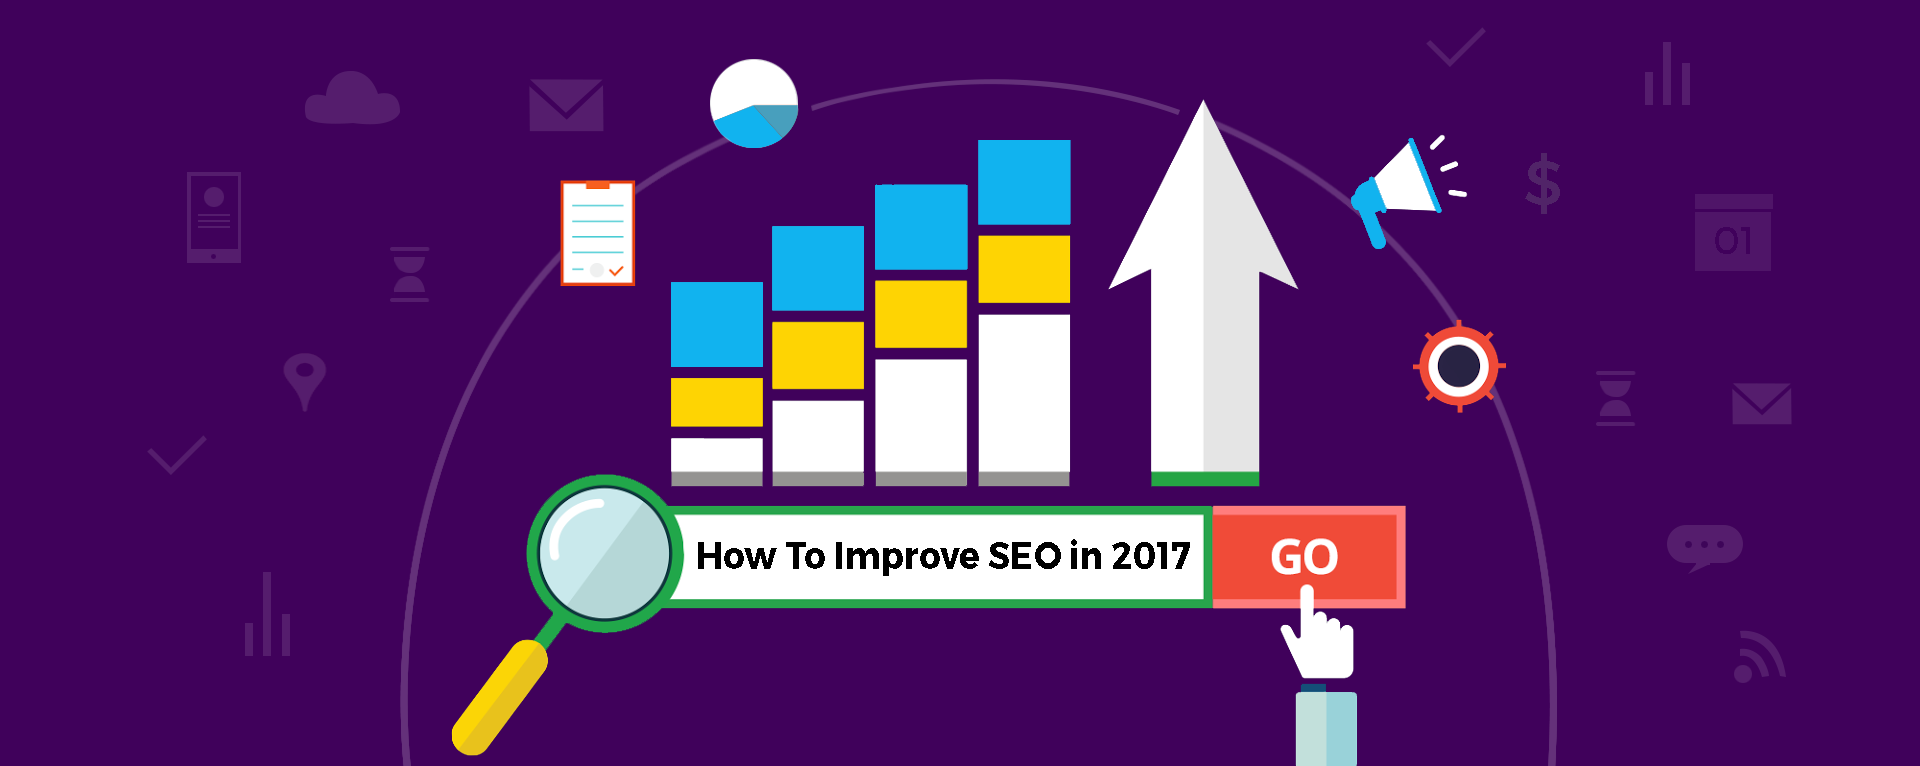 how-to-improve-seo-in-2017-blog